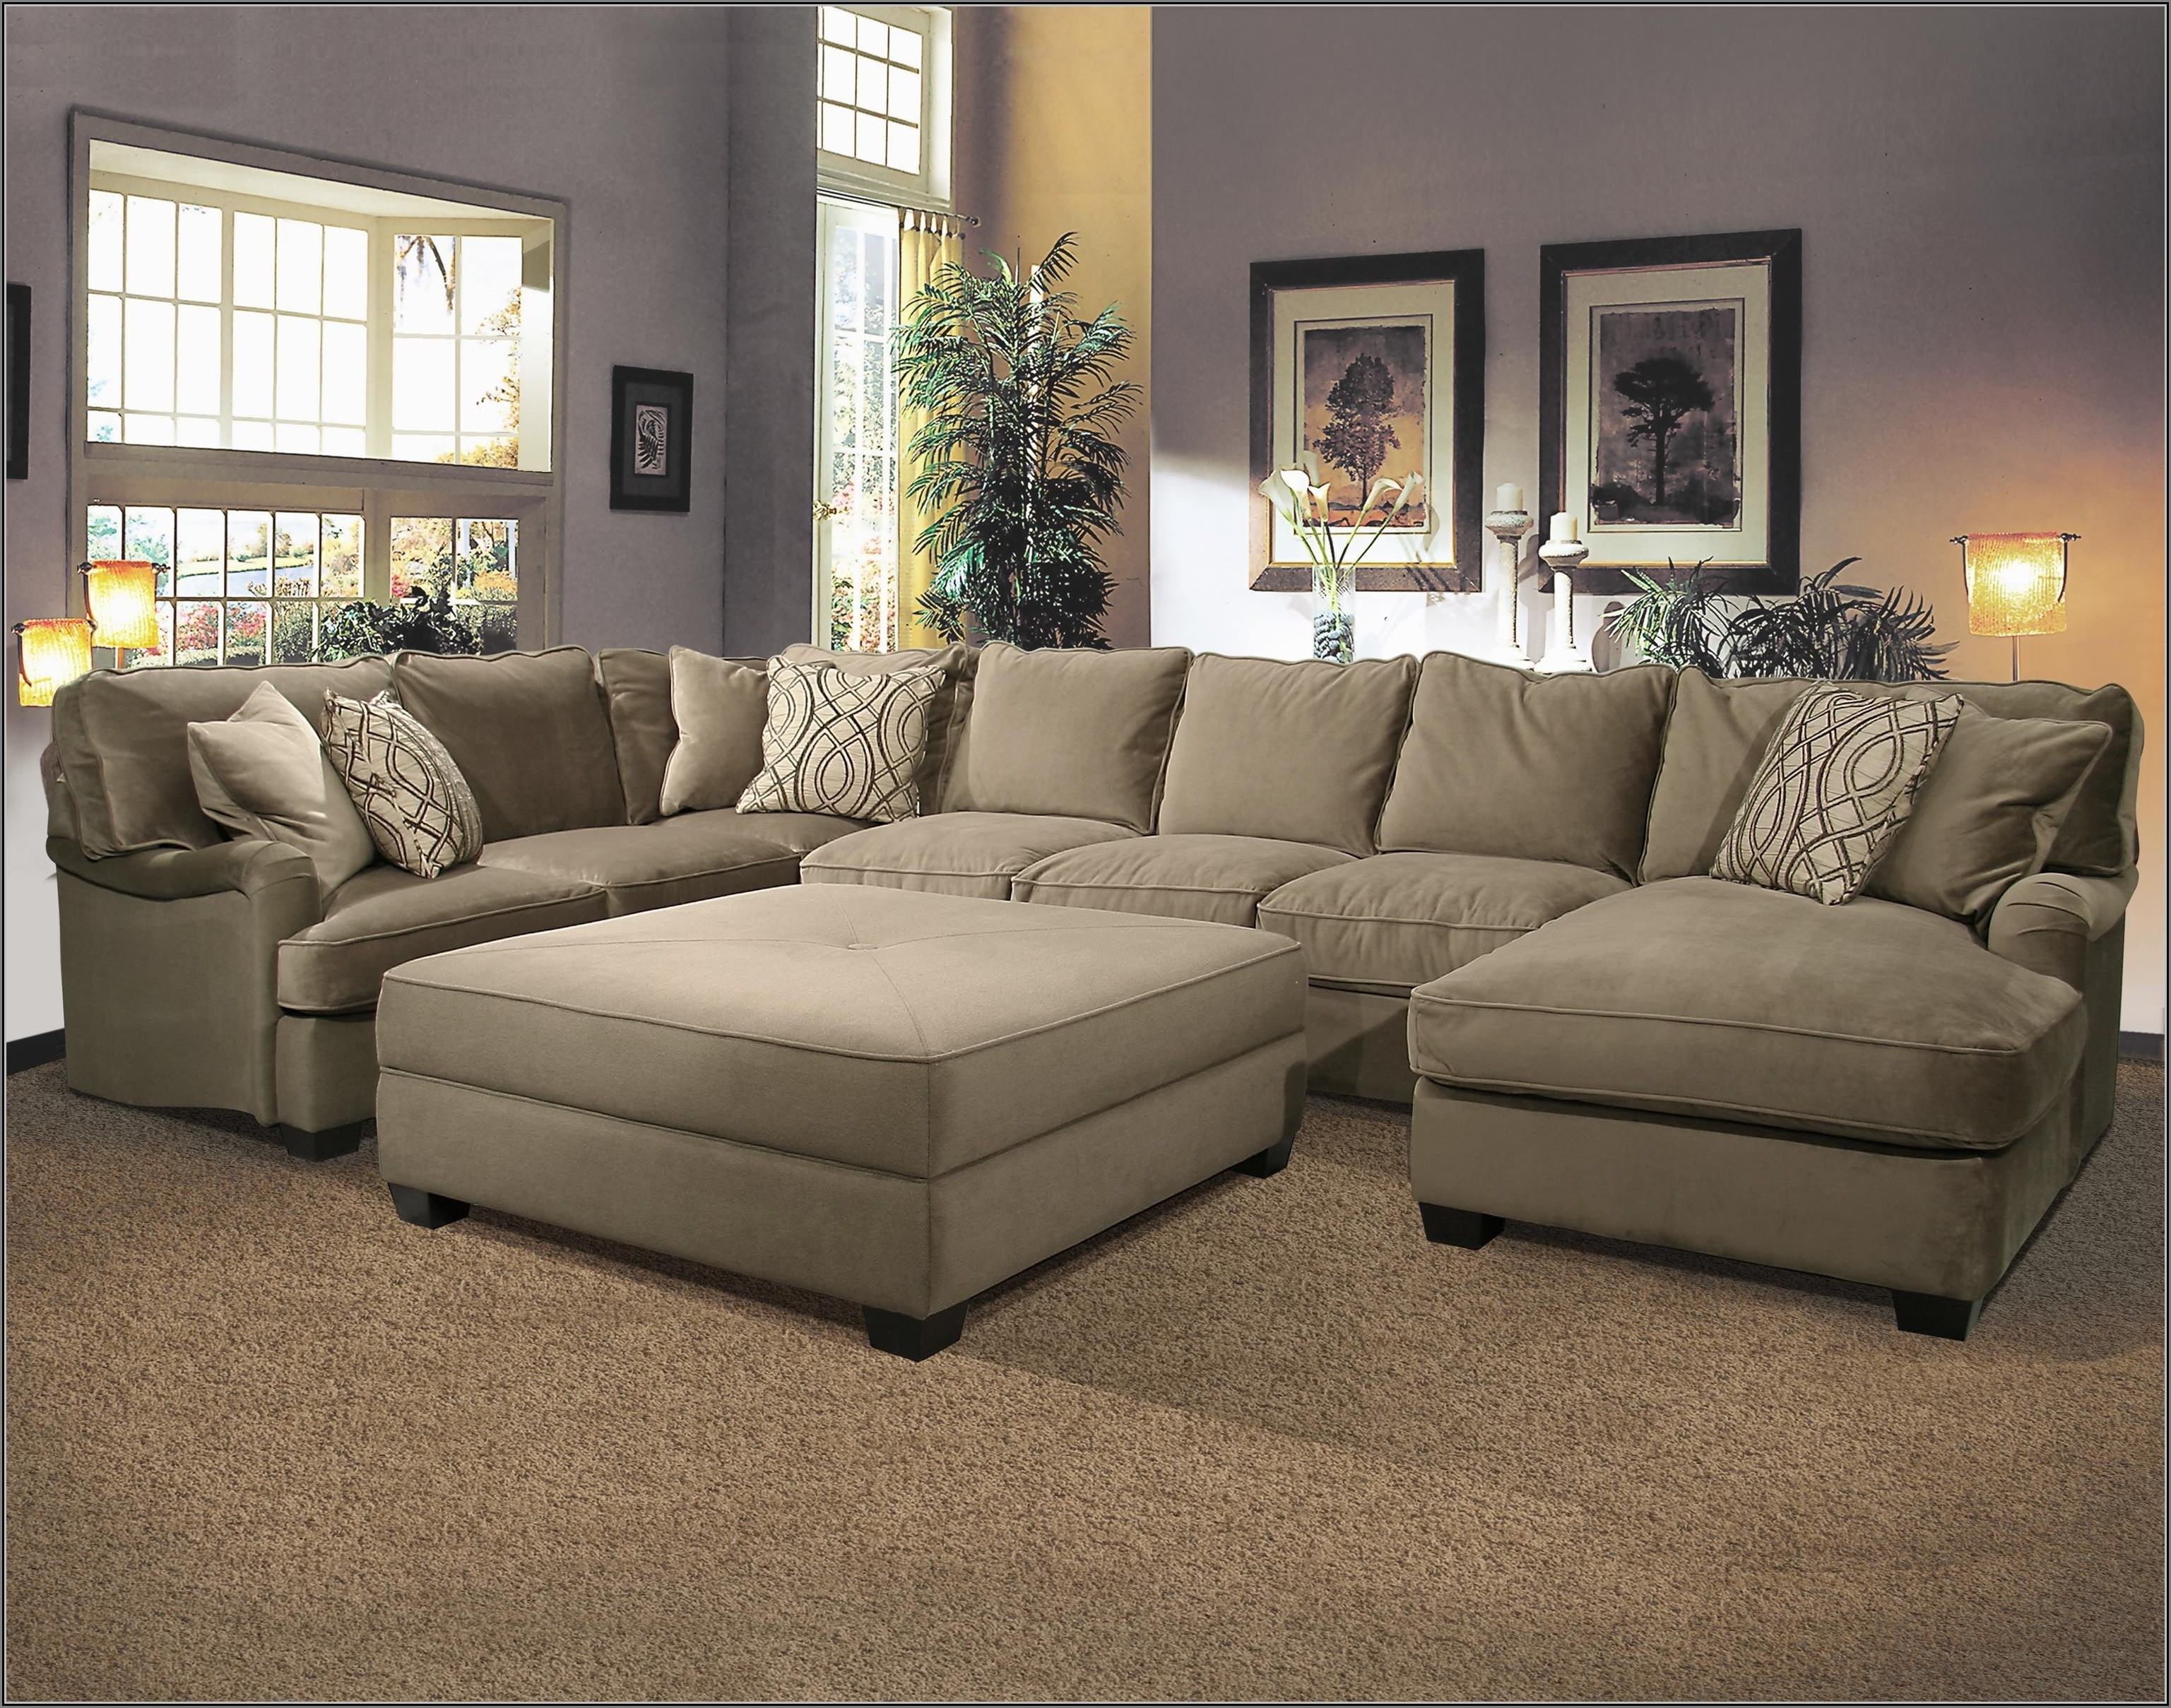 Sectional Sofa With Large Ottoman Hotelsbacau Com Intended For For Small Sectional Sofas With Chaise And Ottoman (View 7 of 10)